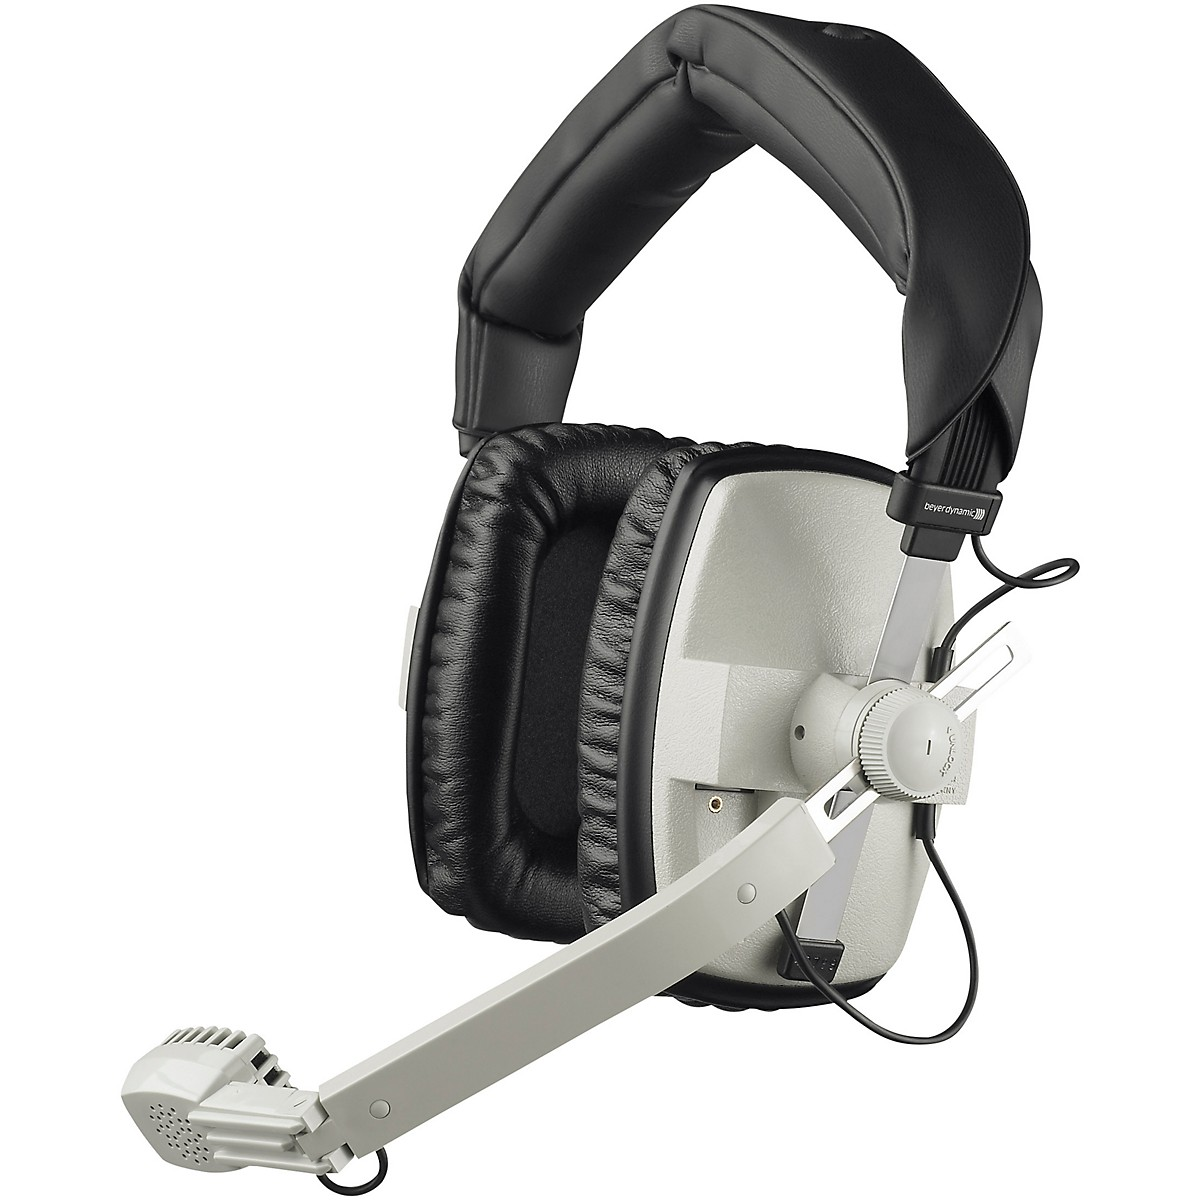 Beyerdynamic DT 109 400 ohm Headset (cable not included)